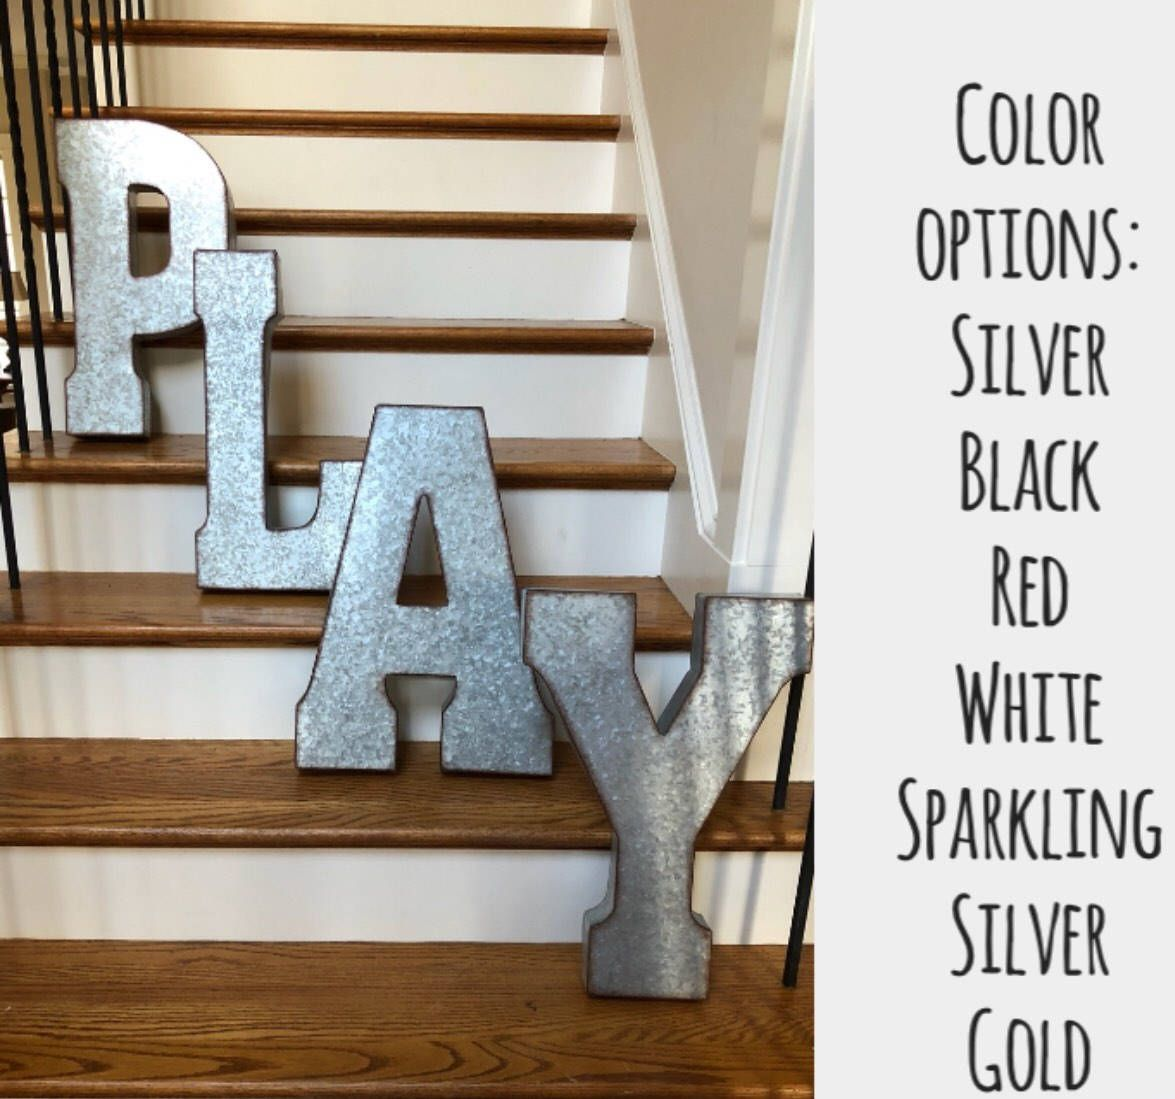 Extra Large Metal Letters Pick Color Word Play Galvanized Metal Letters Xxl Business Letters 20 Inch Metal Letters Wall Letters Large Metal Letters Metal Wall Letters Metal Letters